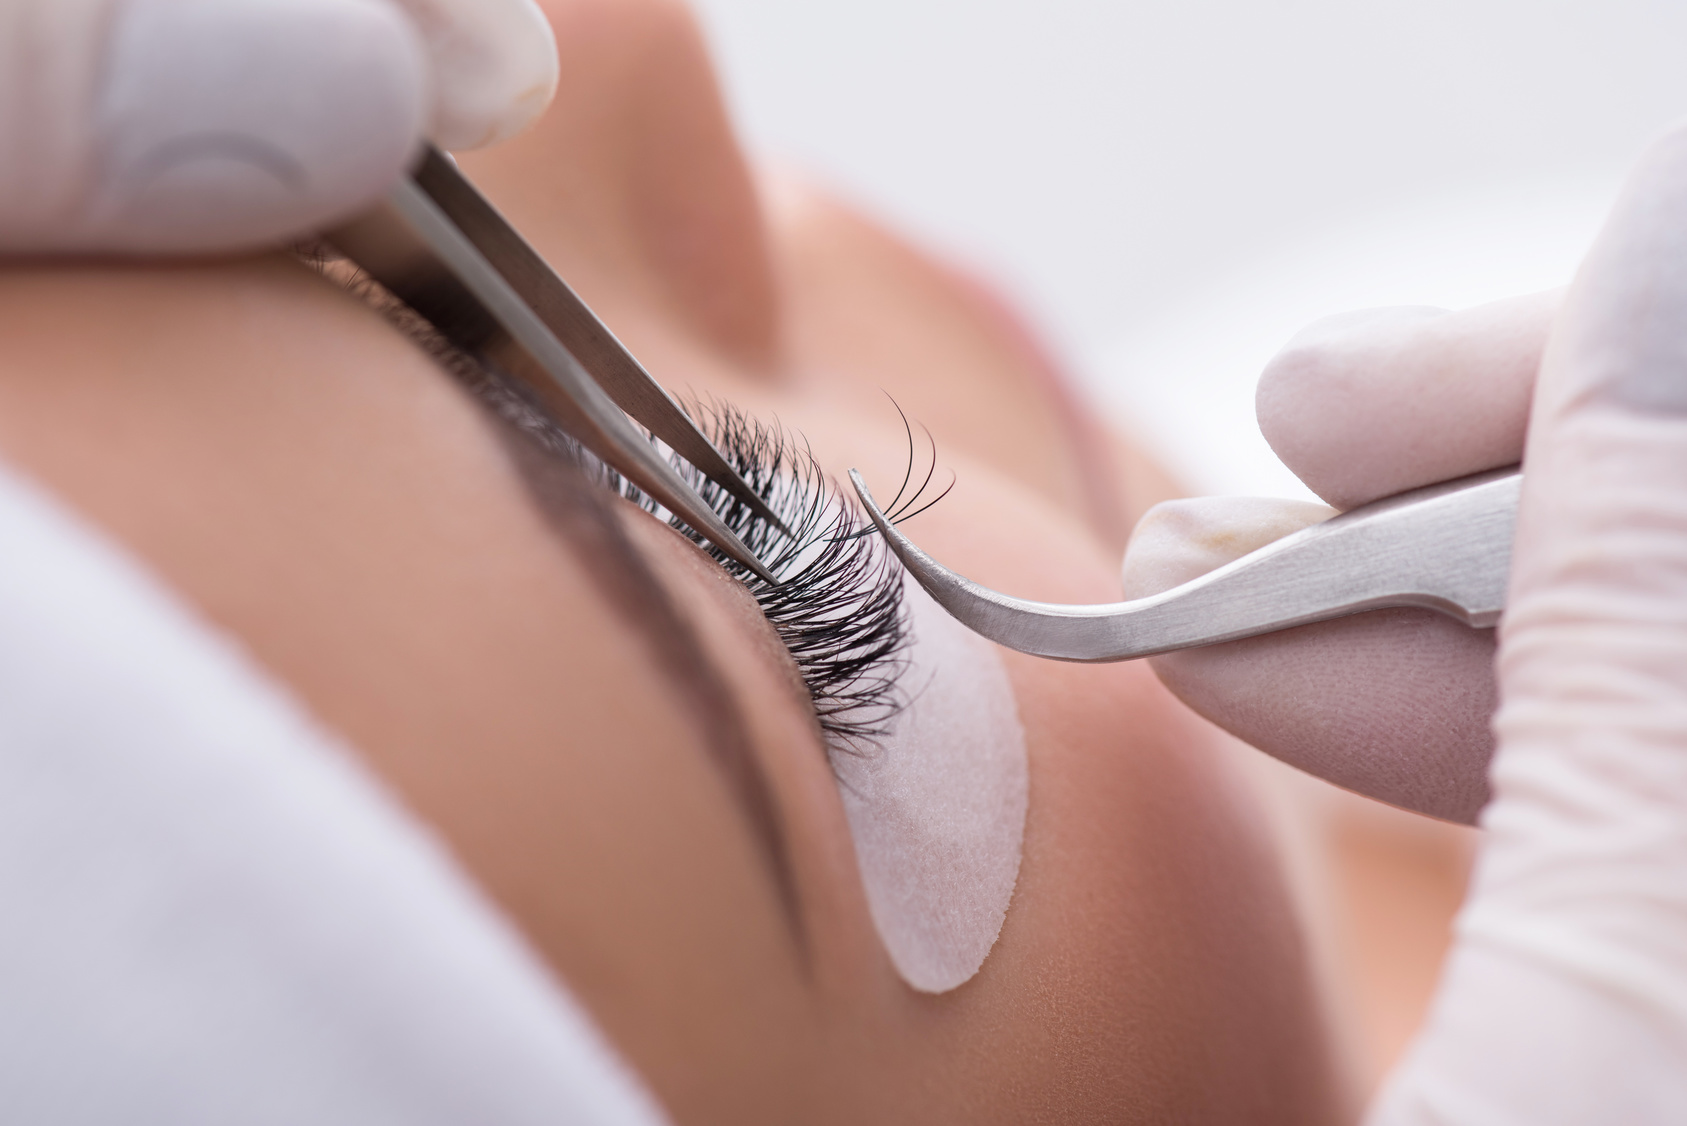 Skillful cosmetologist undergoing lash extension procedure